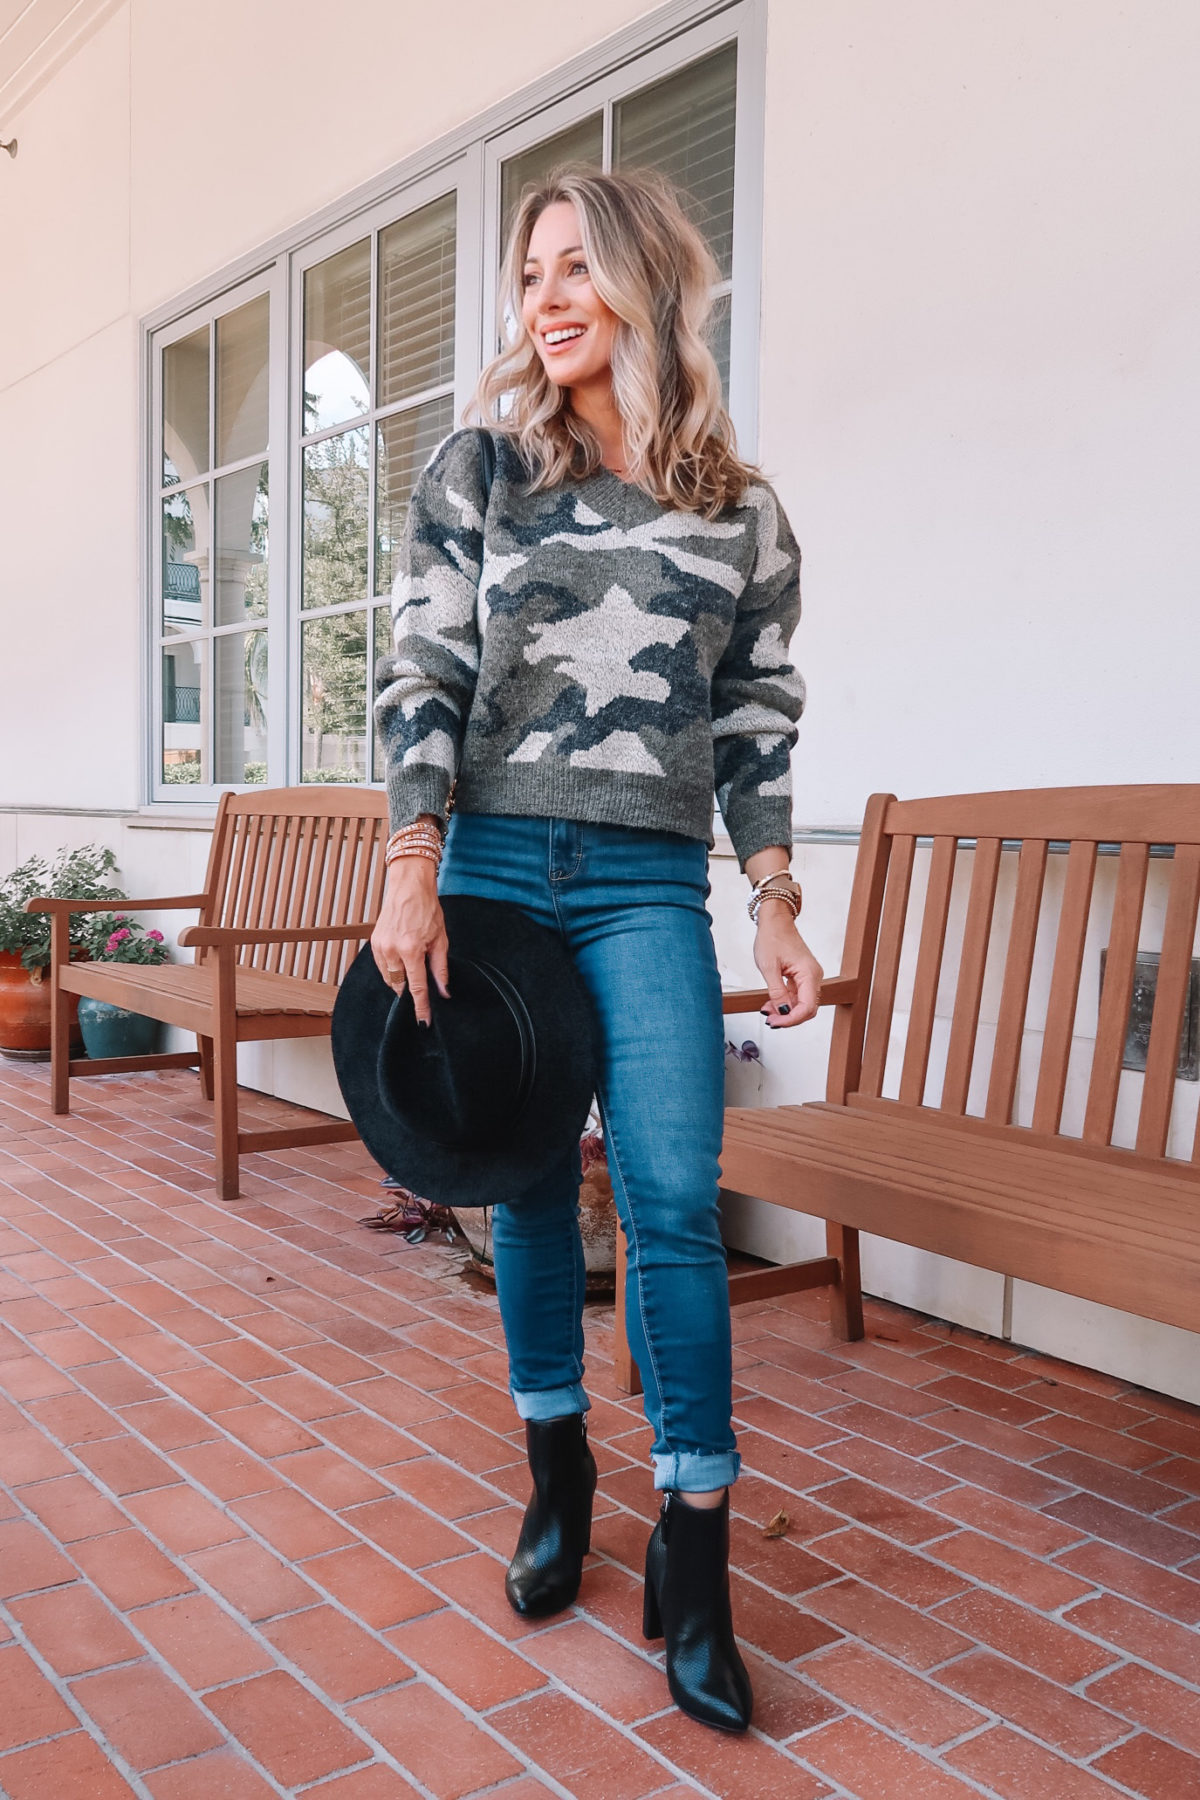 Outfits Lately, Camo Sweater, Jeans, Booties, Hat